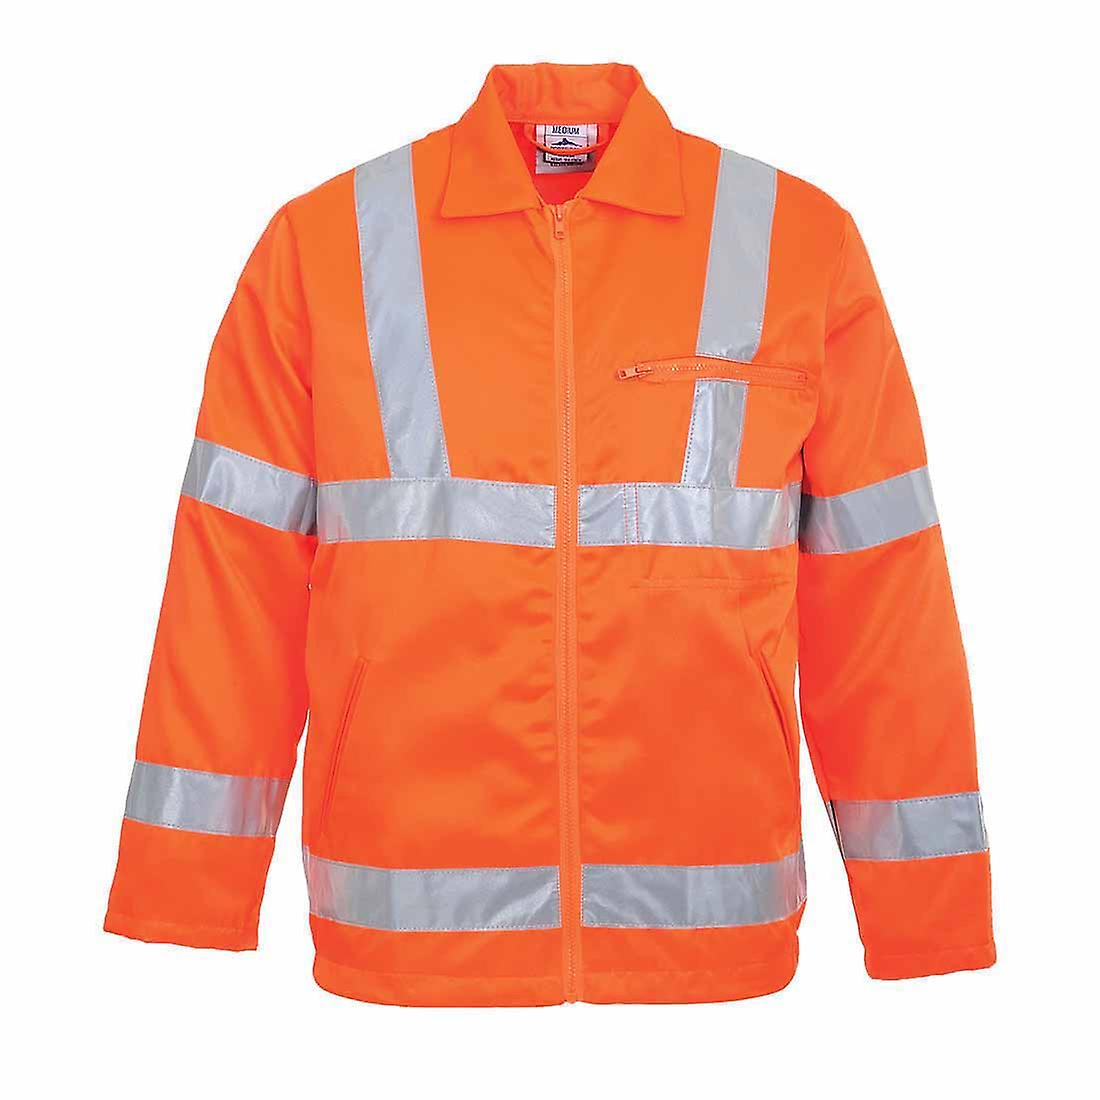 SUw - Hi-Vis Safety Workwear Poly-cotton Rail Track Side Jacket RIS